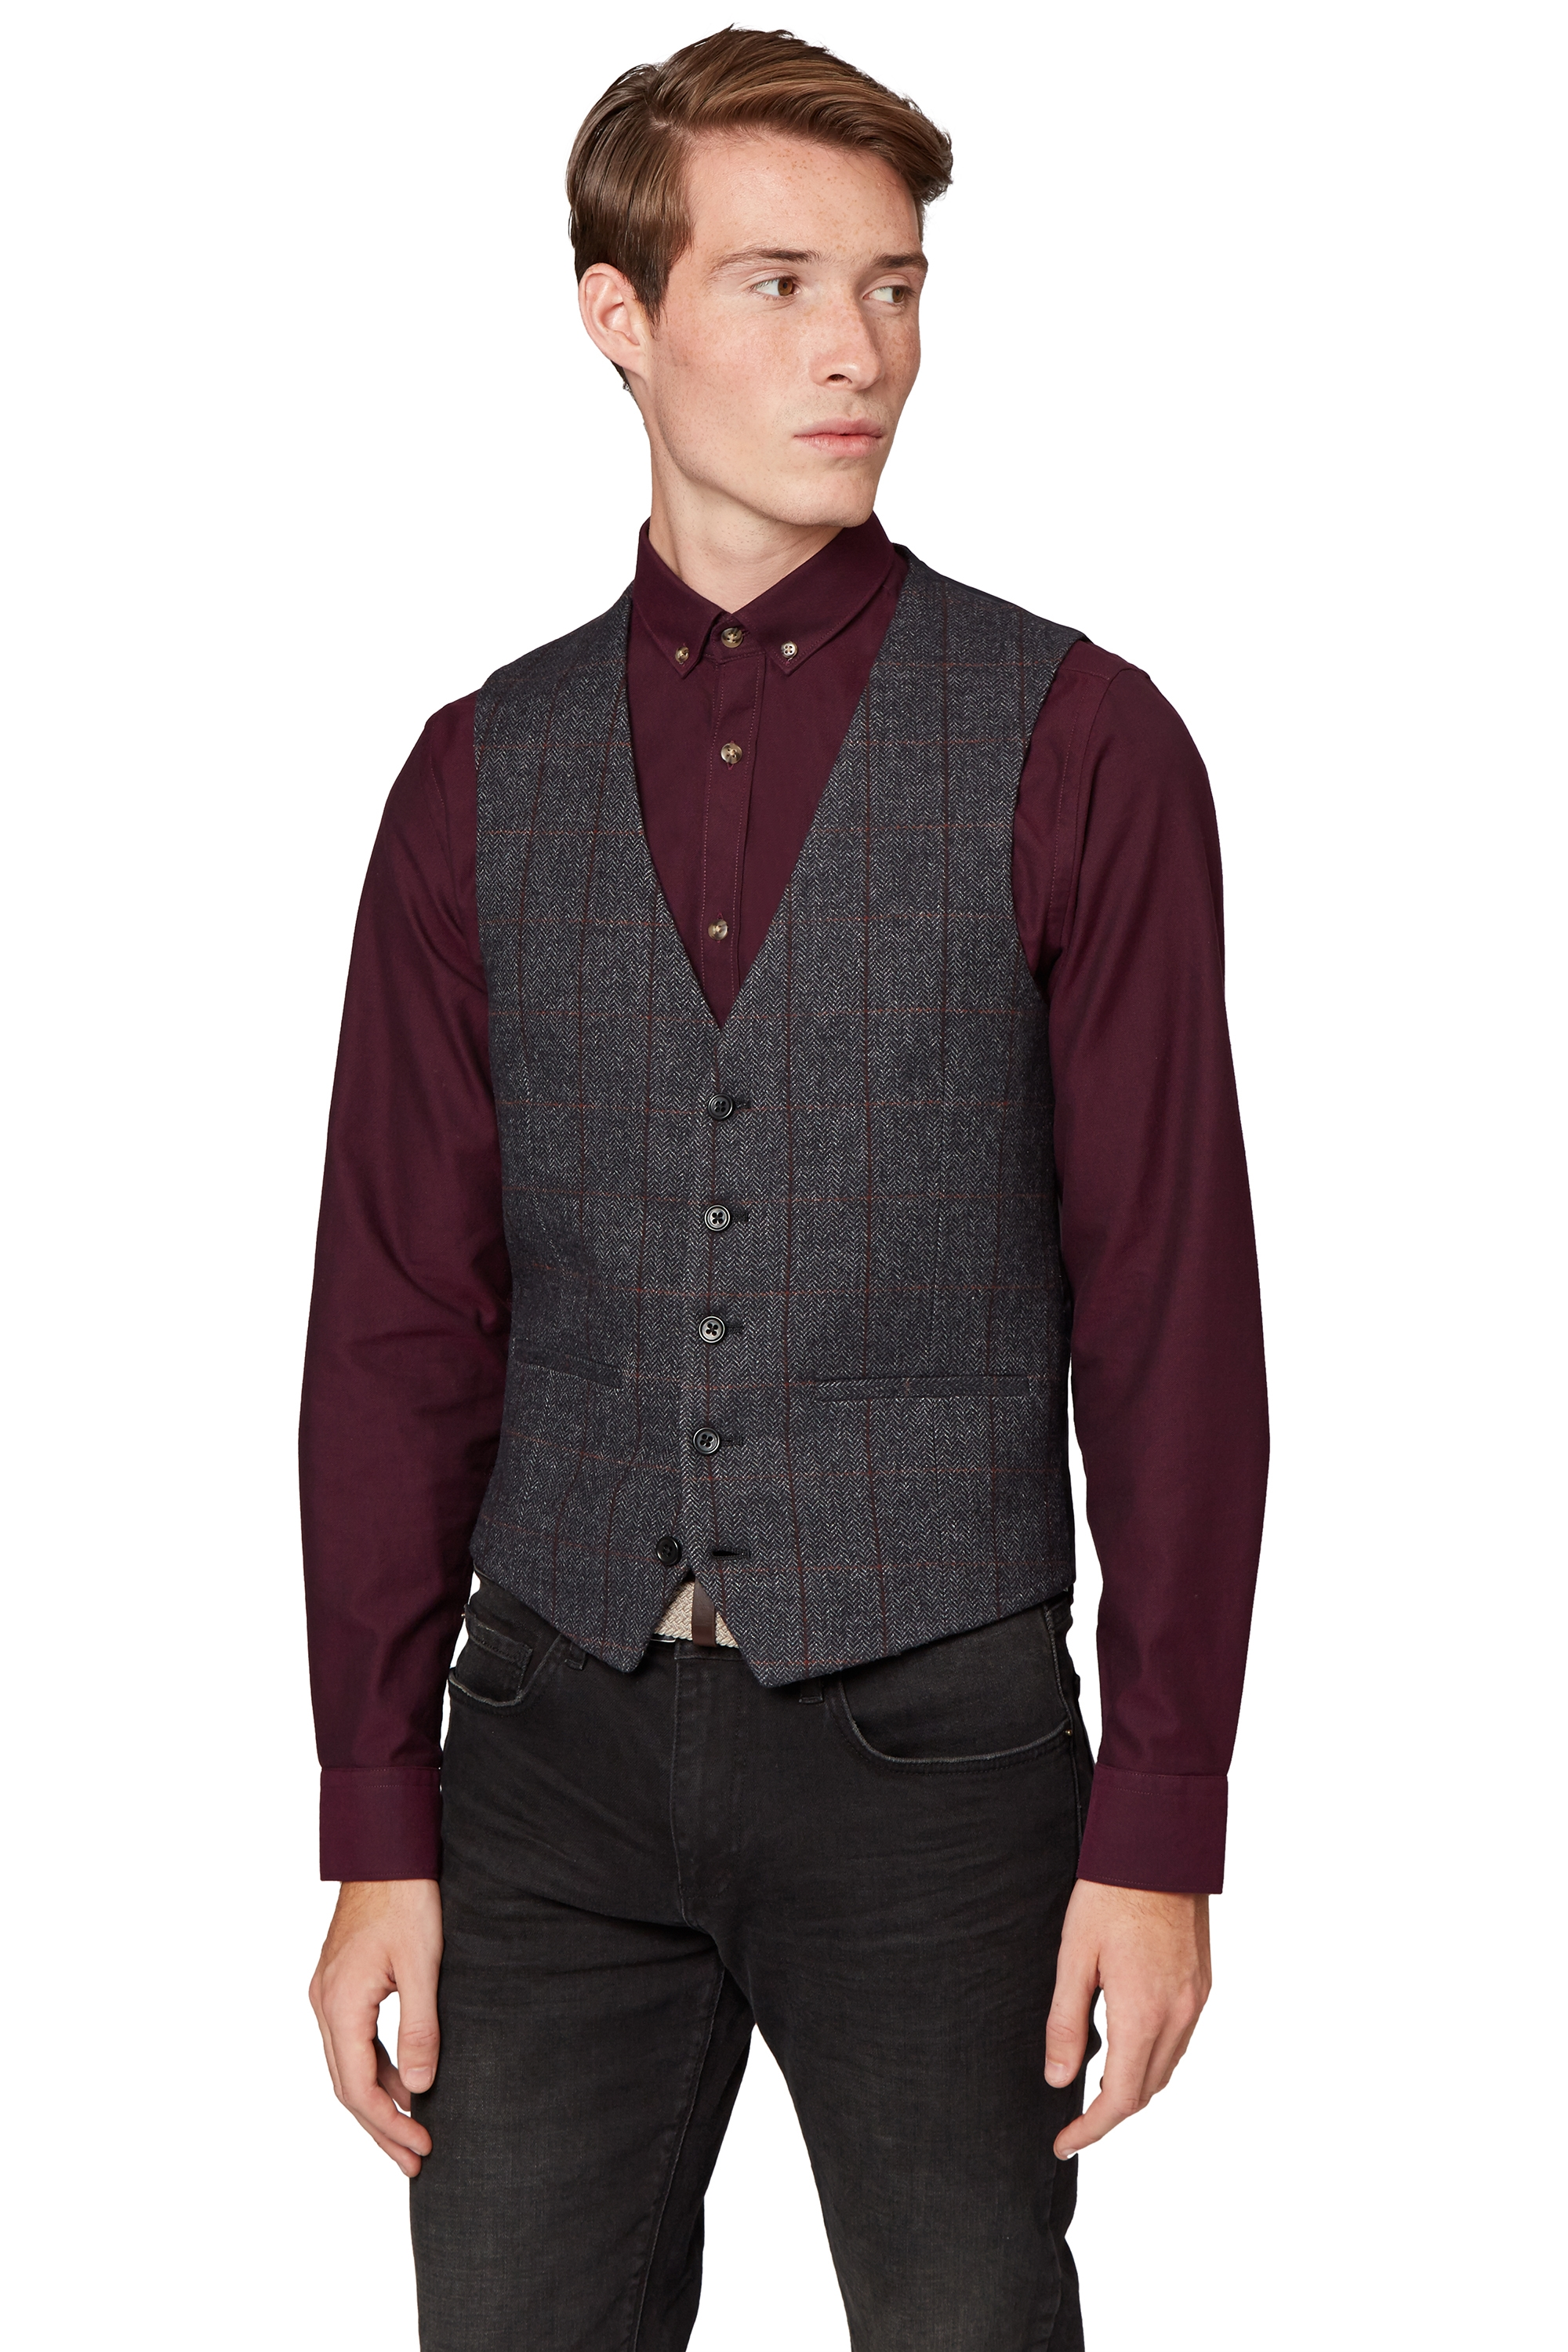 archivesnapug.cf: grey waistcoat. Interesting Finds Updated Daily. Amazon Try Prime All WEEN CHARM Men's Business Suit Waistcoat Double Breasted Tweed Slim Fit Dress Tuxedo Vintage Gentleman Vest V-Neck. by WEEN CHARM. $ - $ $ 19 $ 24 77 Prime. FREE Shipping on eligible orders.